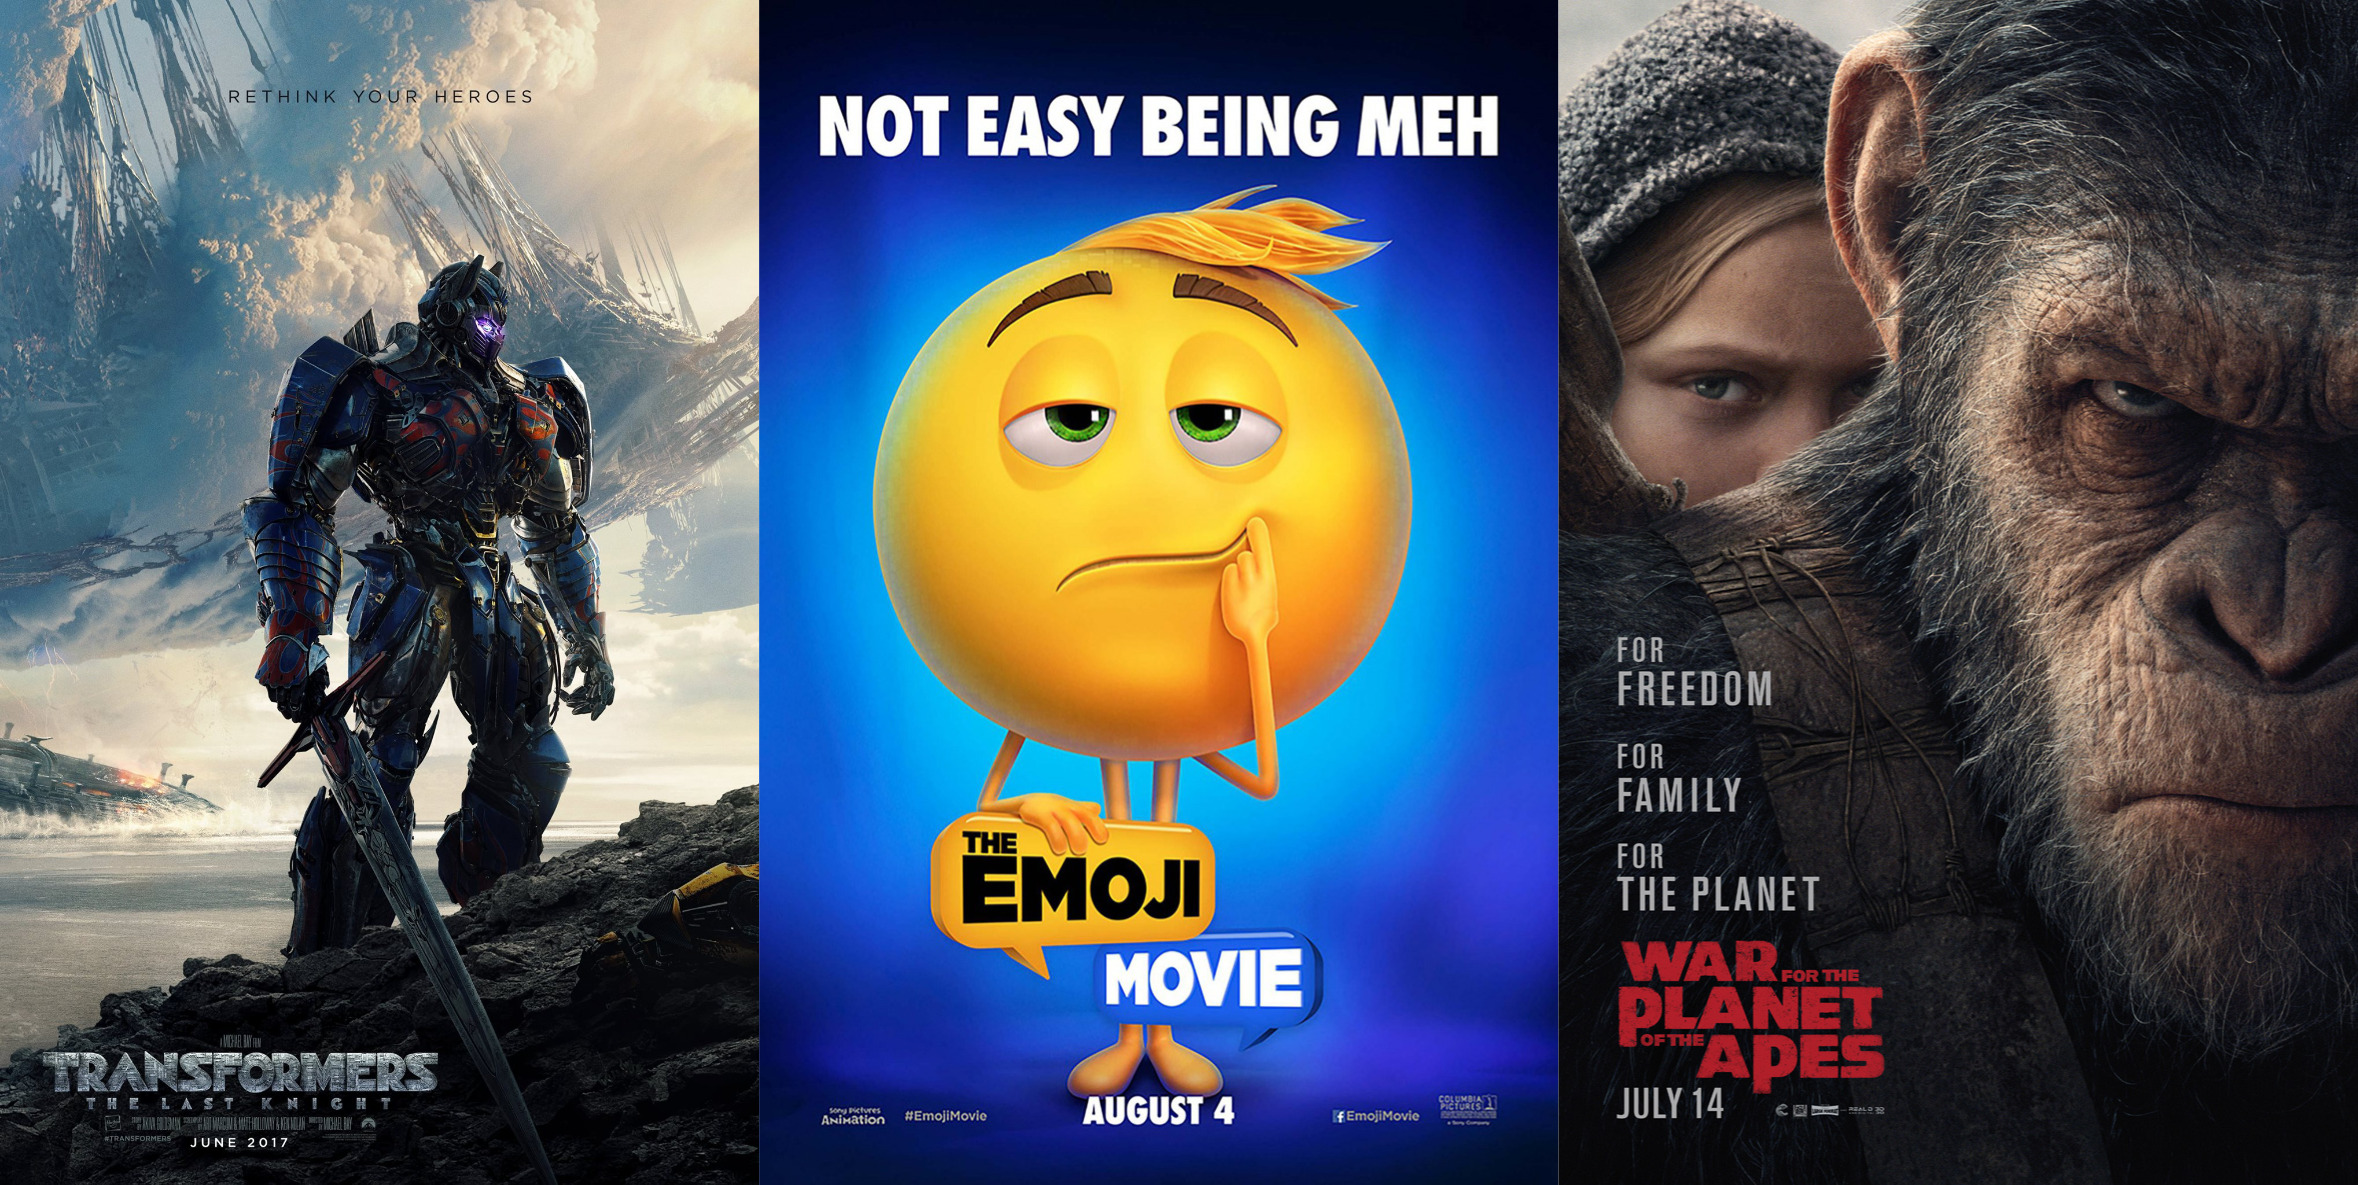 Trailer-Watchin' Wednesday - Transformers: The Last Knight, War for the Planet of the Apes, The Emoji Movie